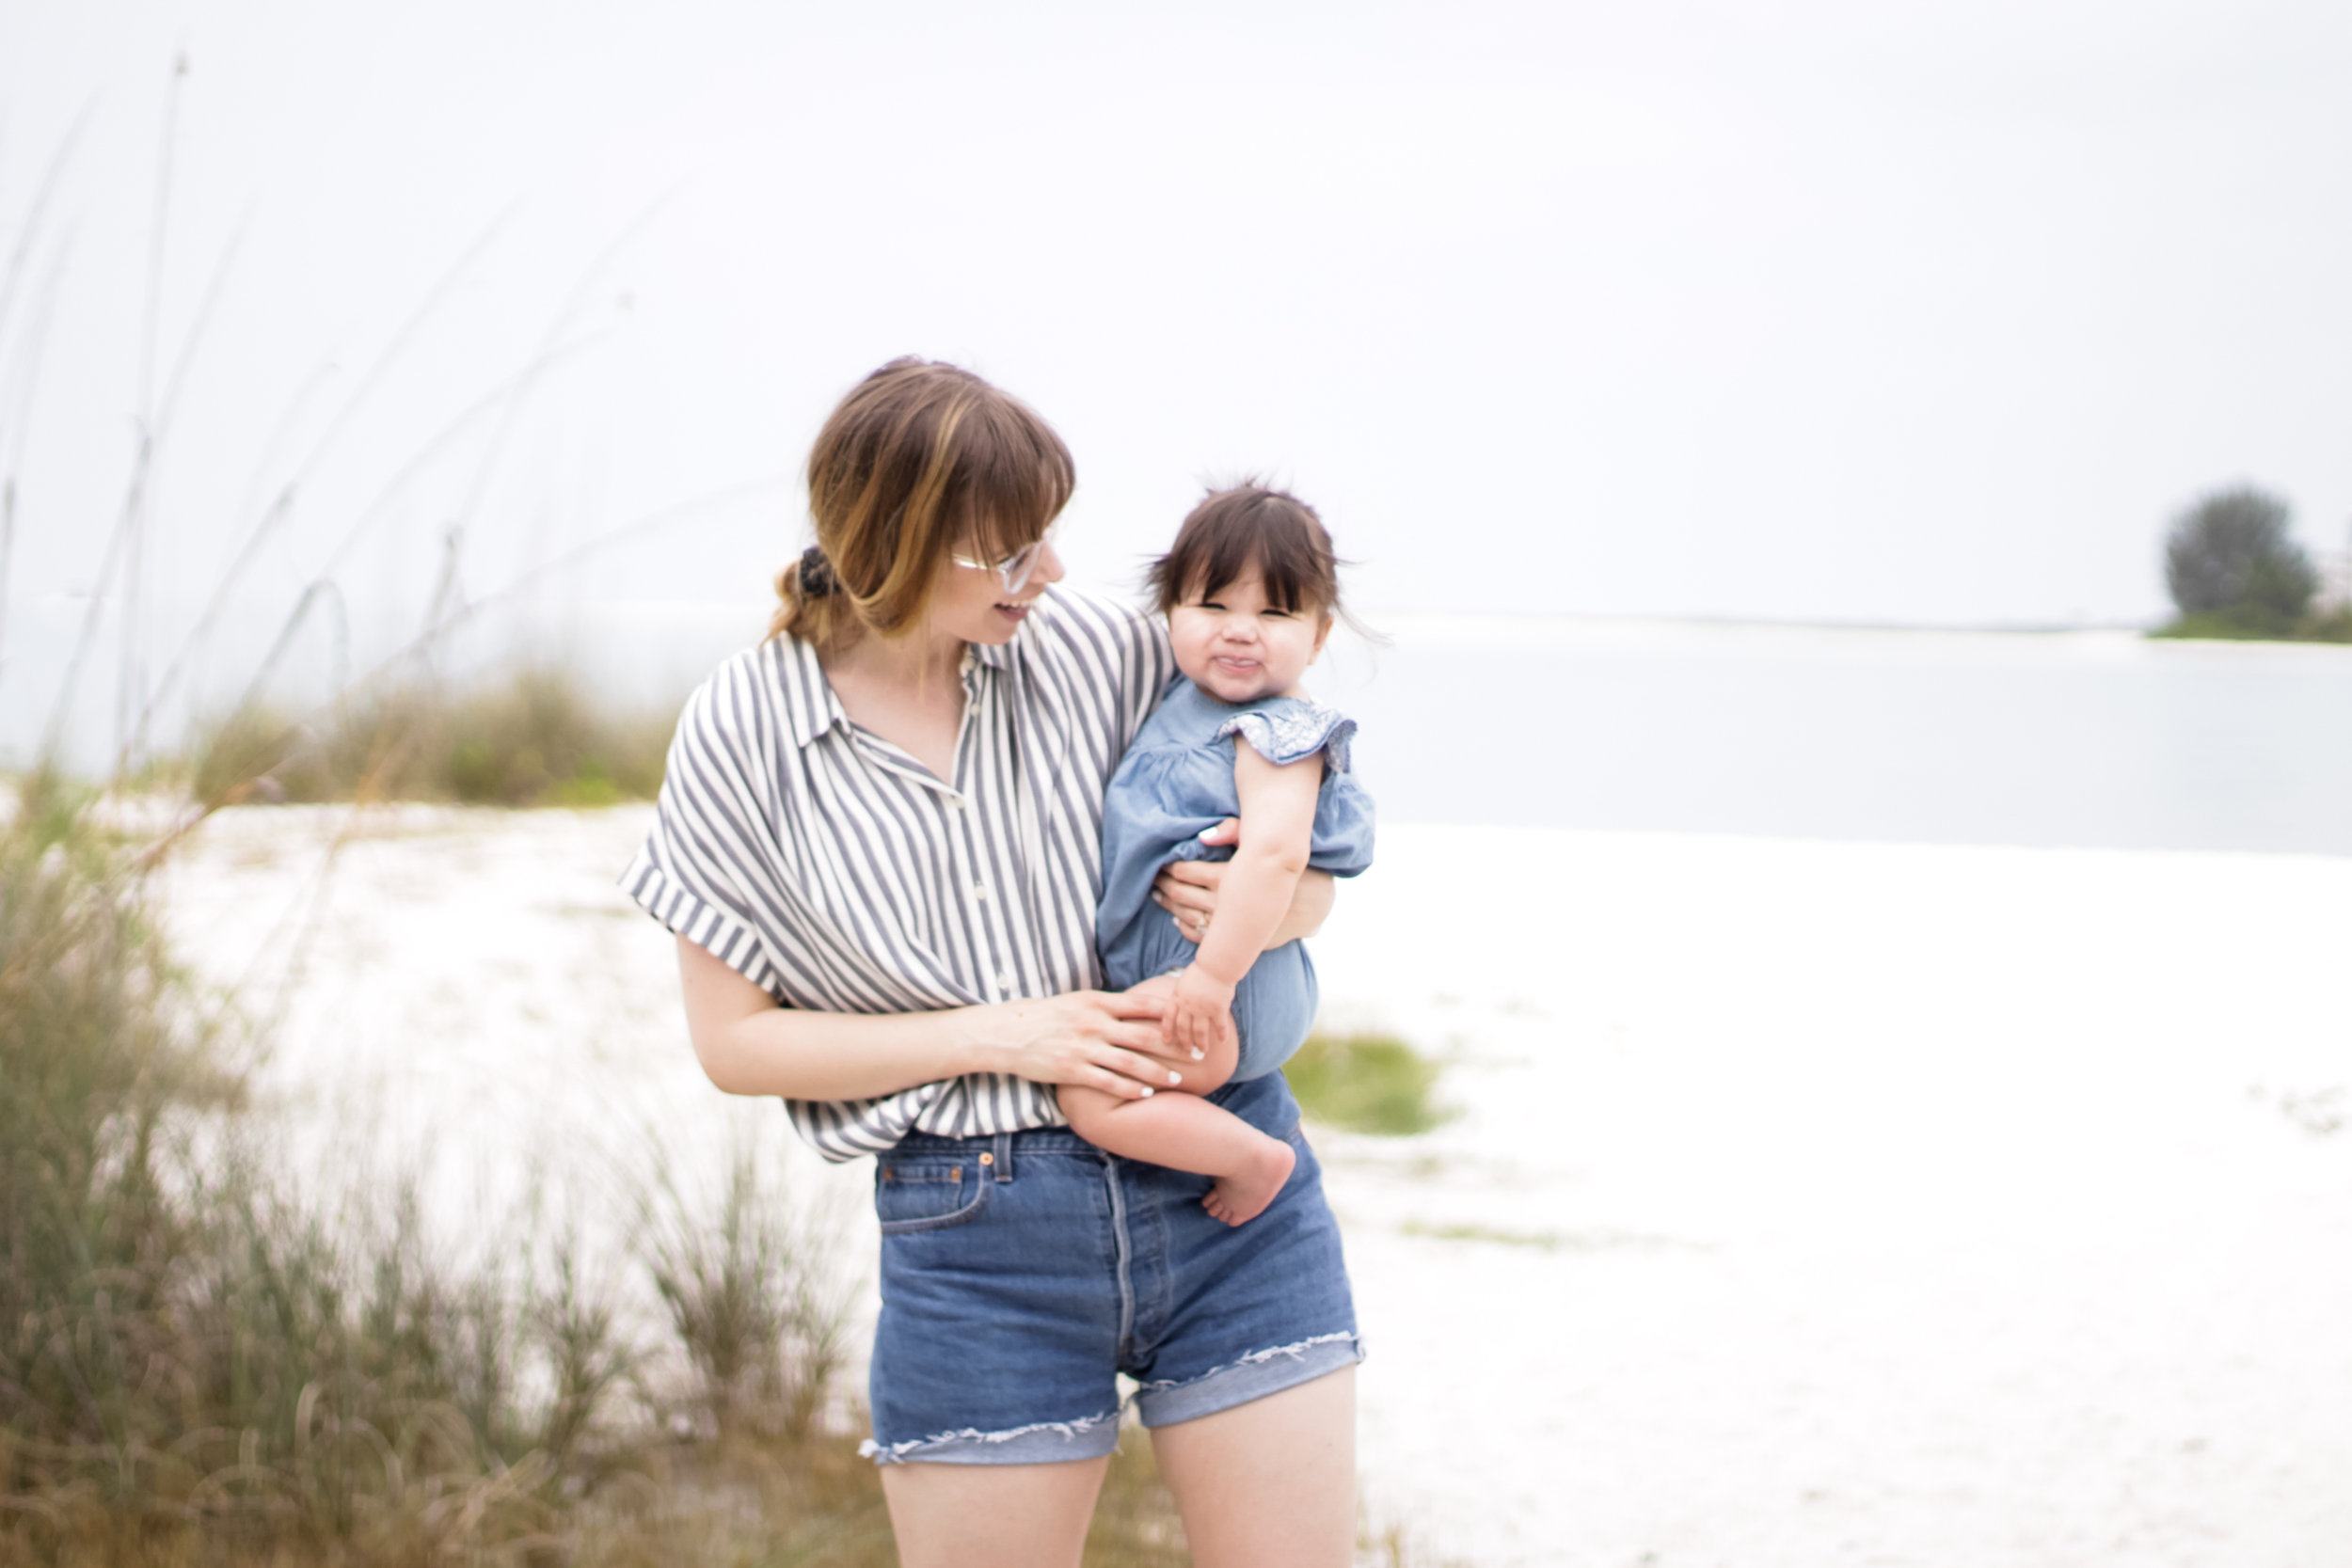 These shorts are actually a vintage/thrift find! They were straight leg Levi's and I chopped them for some summer wear. I think thrifting is another amazing way to find quality items but without the steep price tag. (Nora's face 😂 teething has been in full force over here, and for a while her tongue never left her gums, even when smiling).